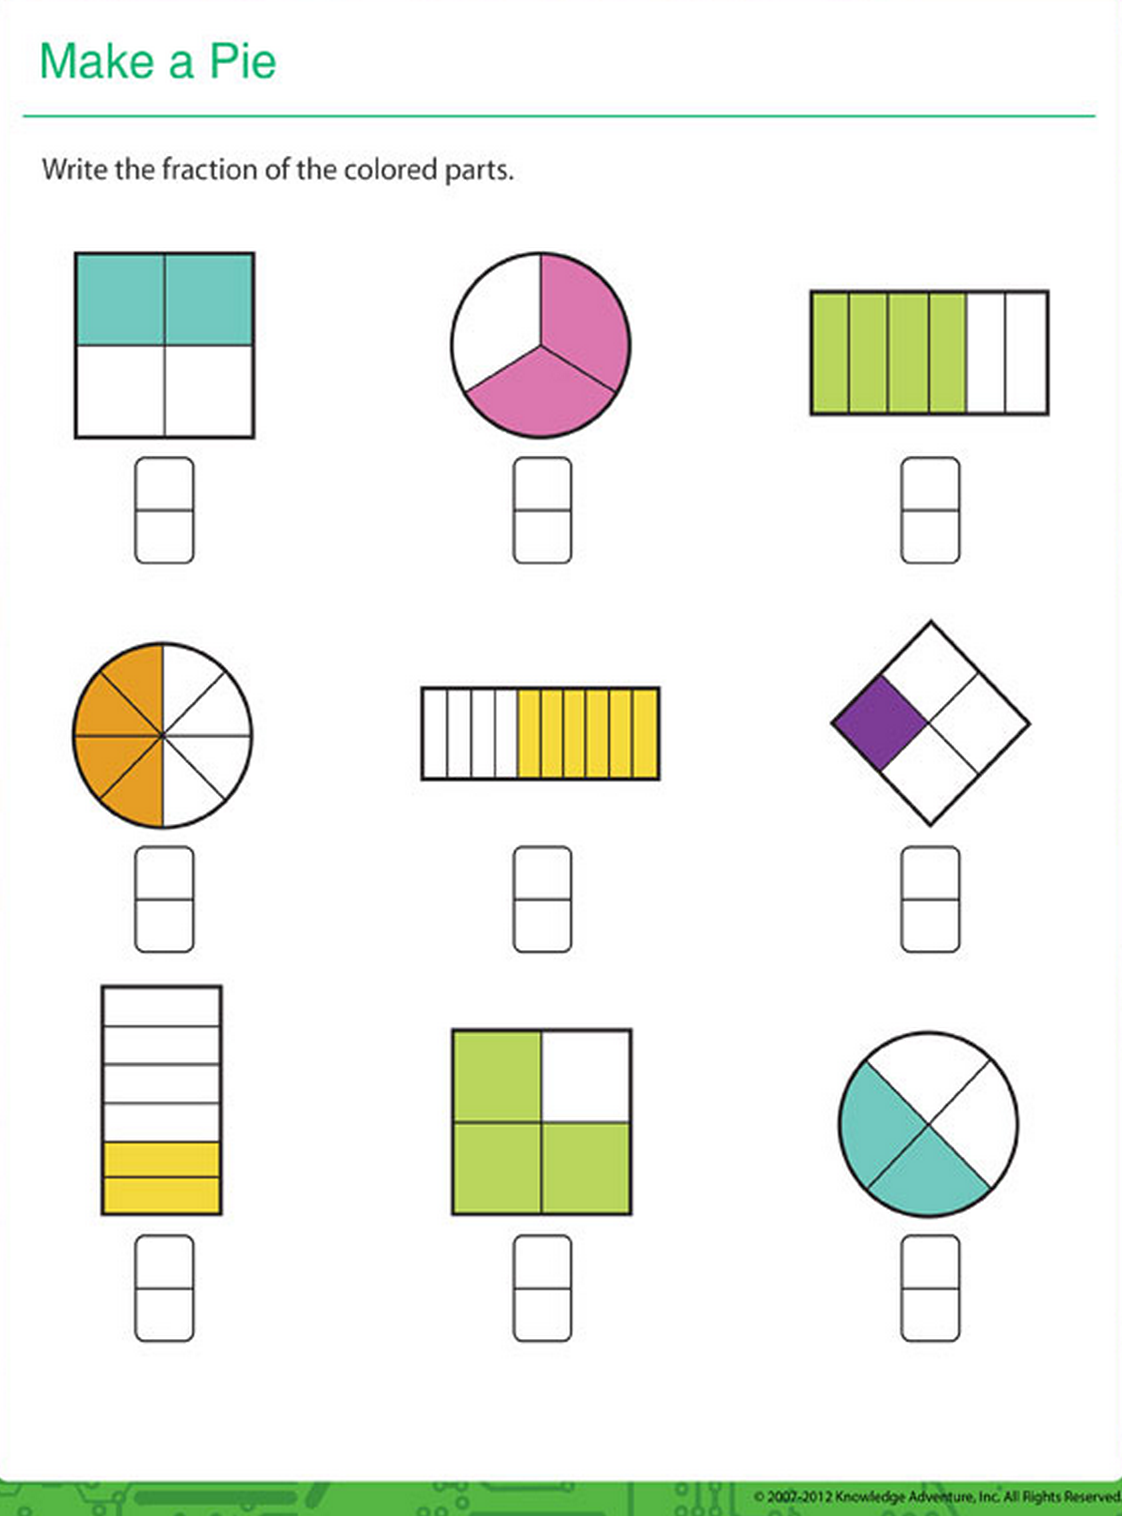 worksheet Shape Fractions what is the fraction for colored parts in each shape against whole